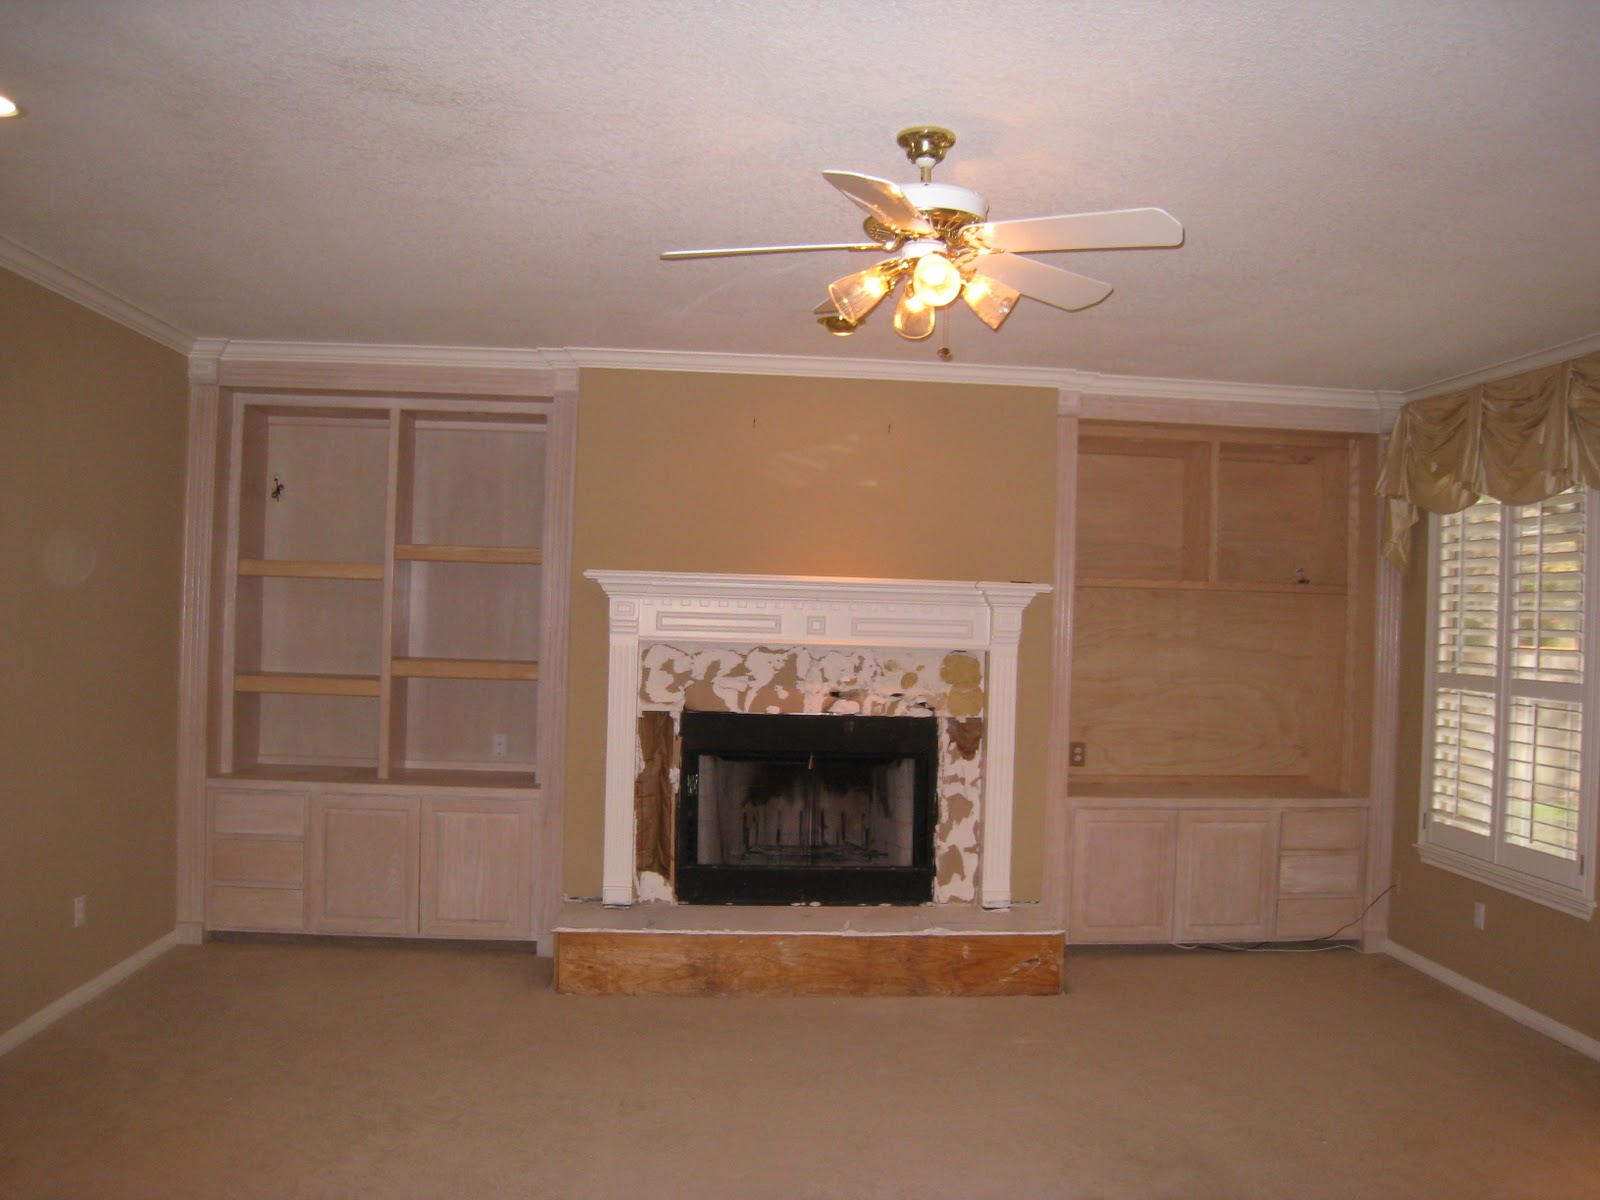 Decorator On Demand: Change the Face of Your Fireplace, Part 2